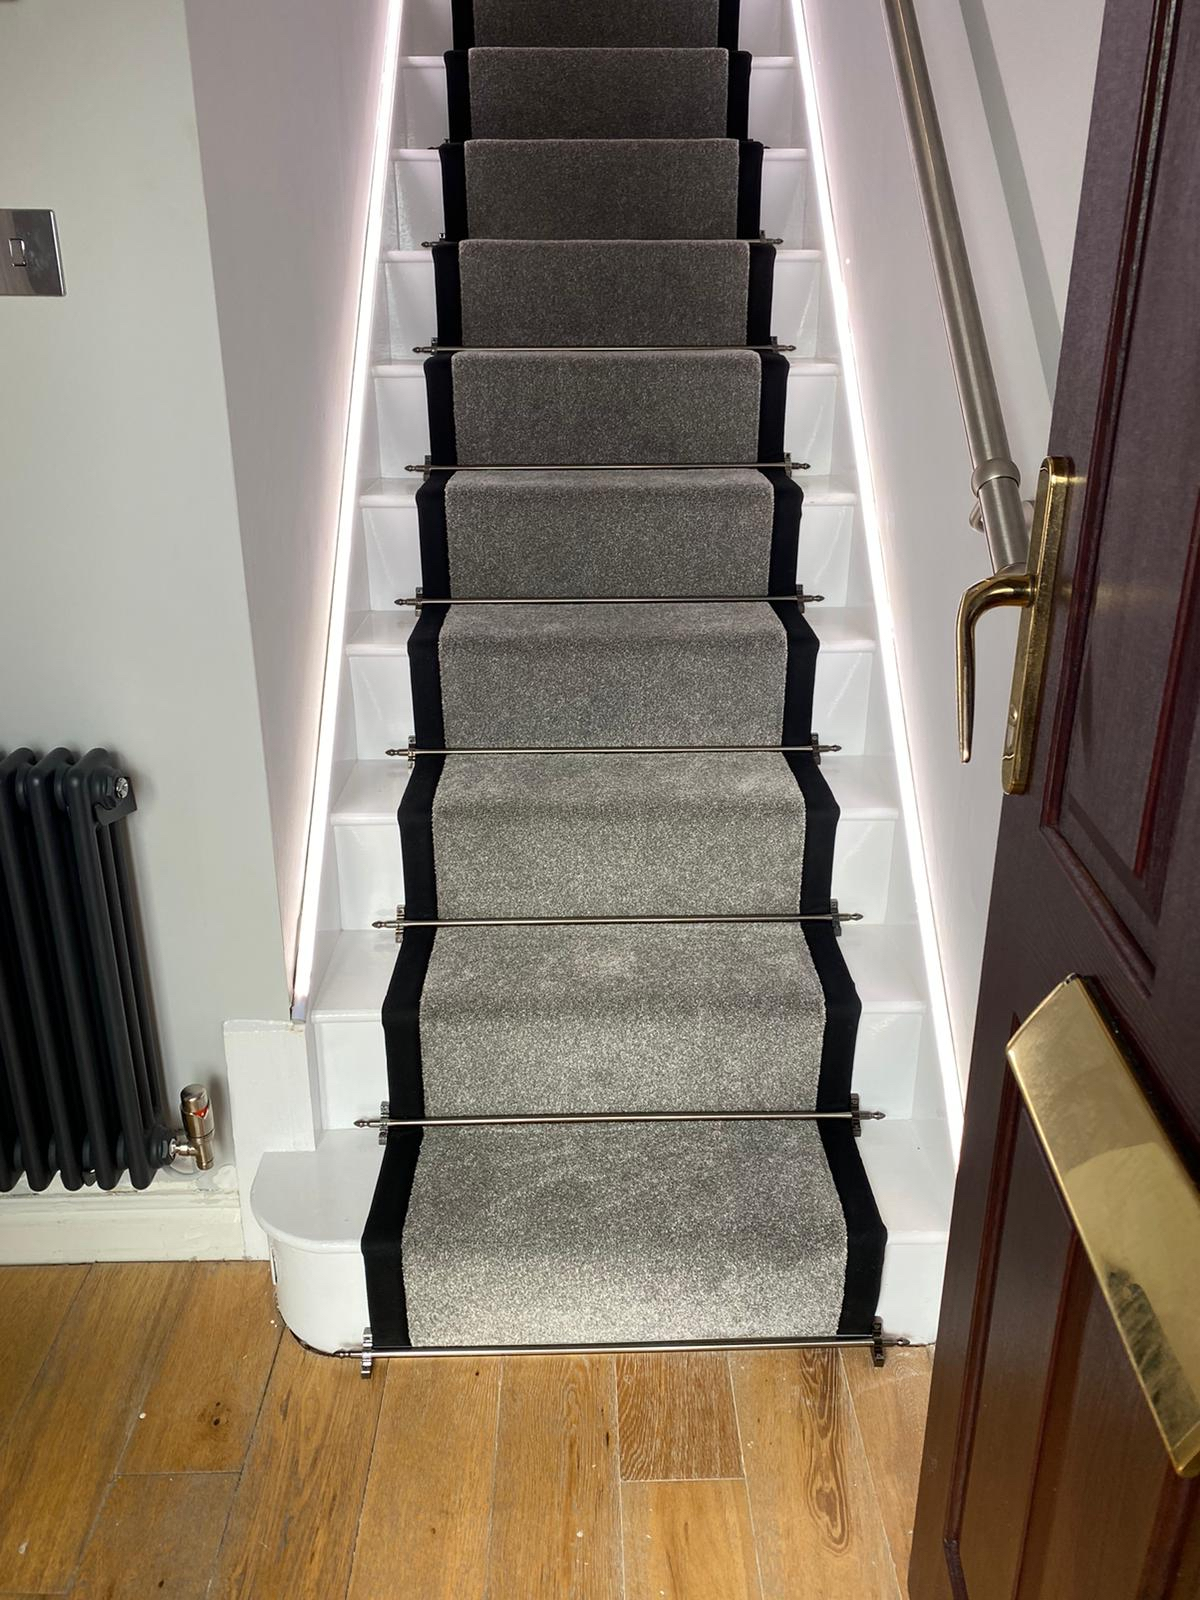 Luxury carpet to landing with bound edges to stairs and stair rods